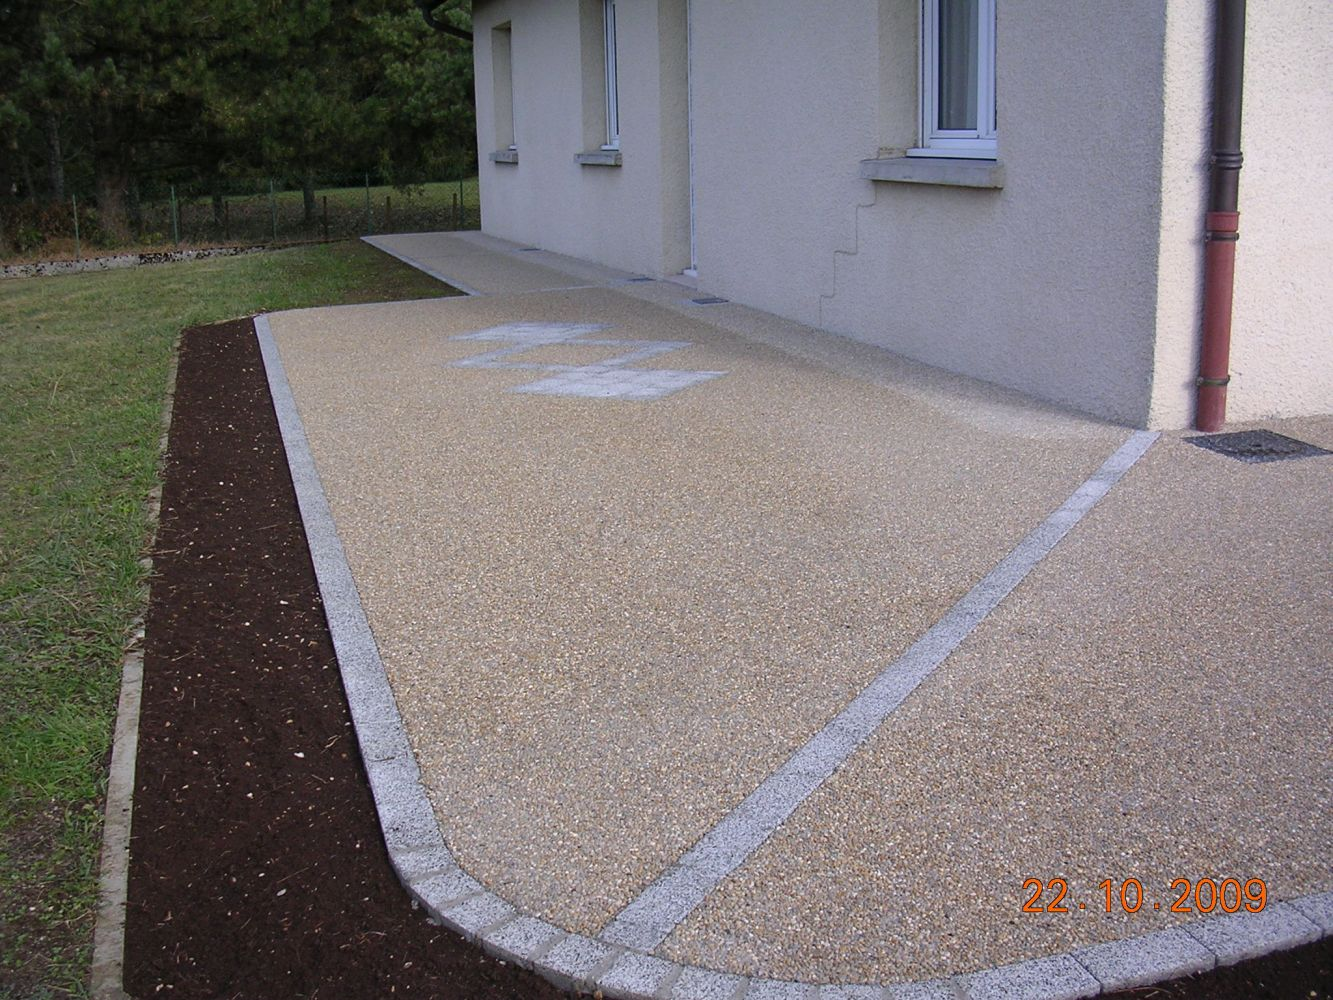 Am nagement de terrasse cuinet am nagement ext rieur - Pochoir pour terrasse beton ...